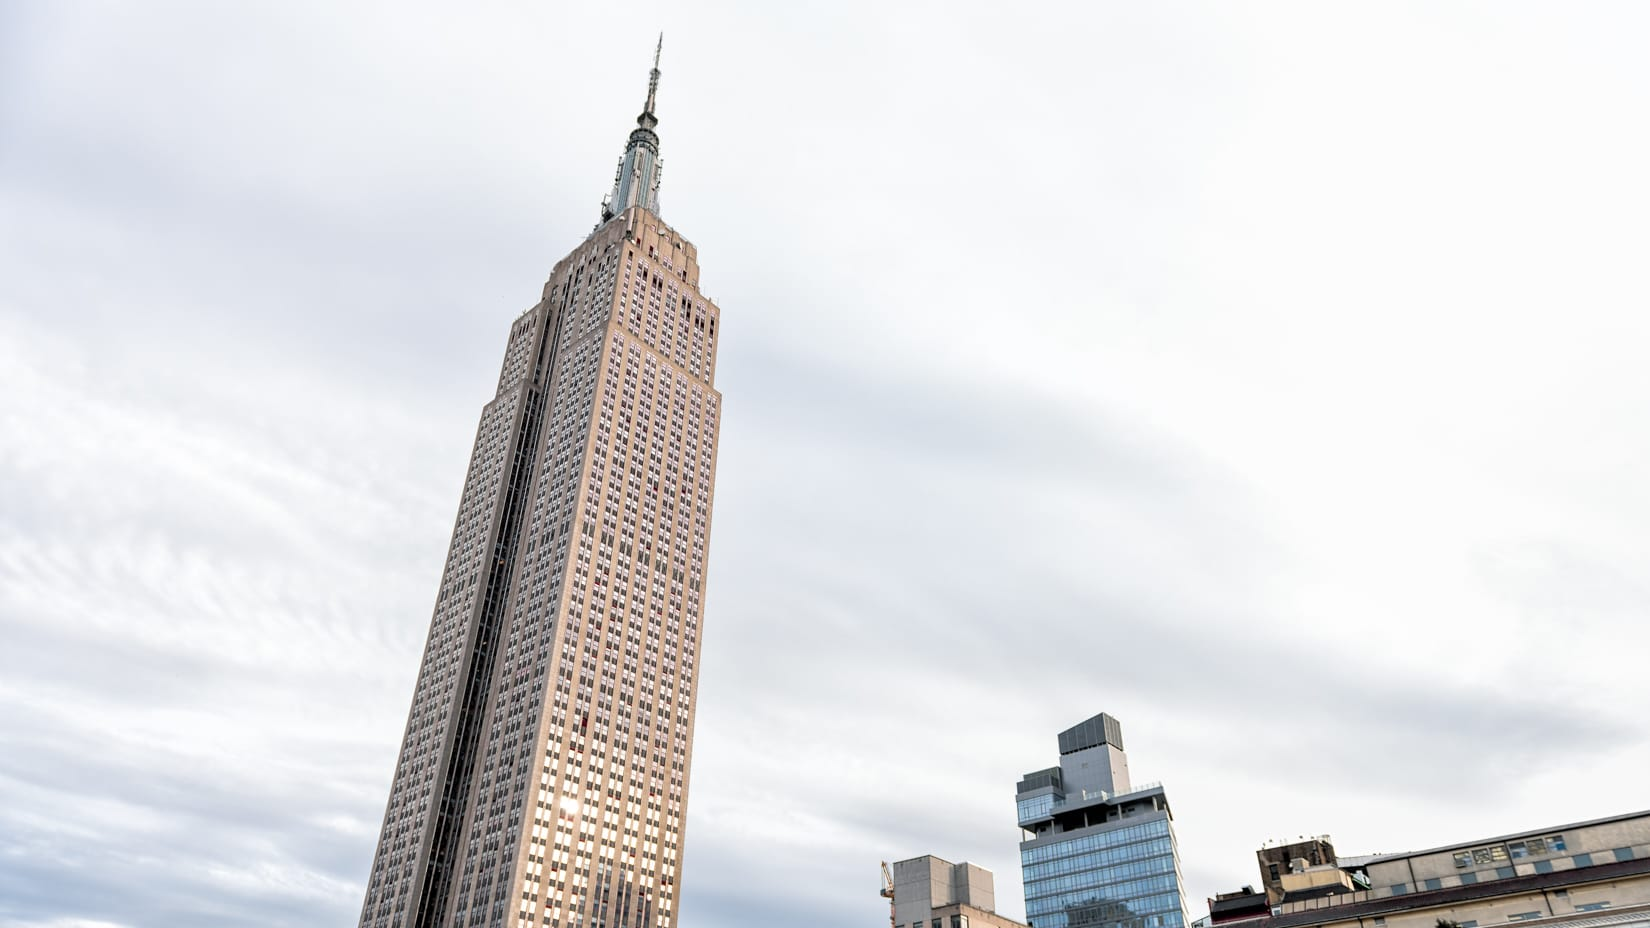 Empire State Building on a cloudy day